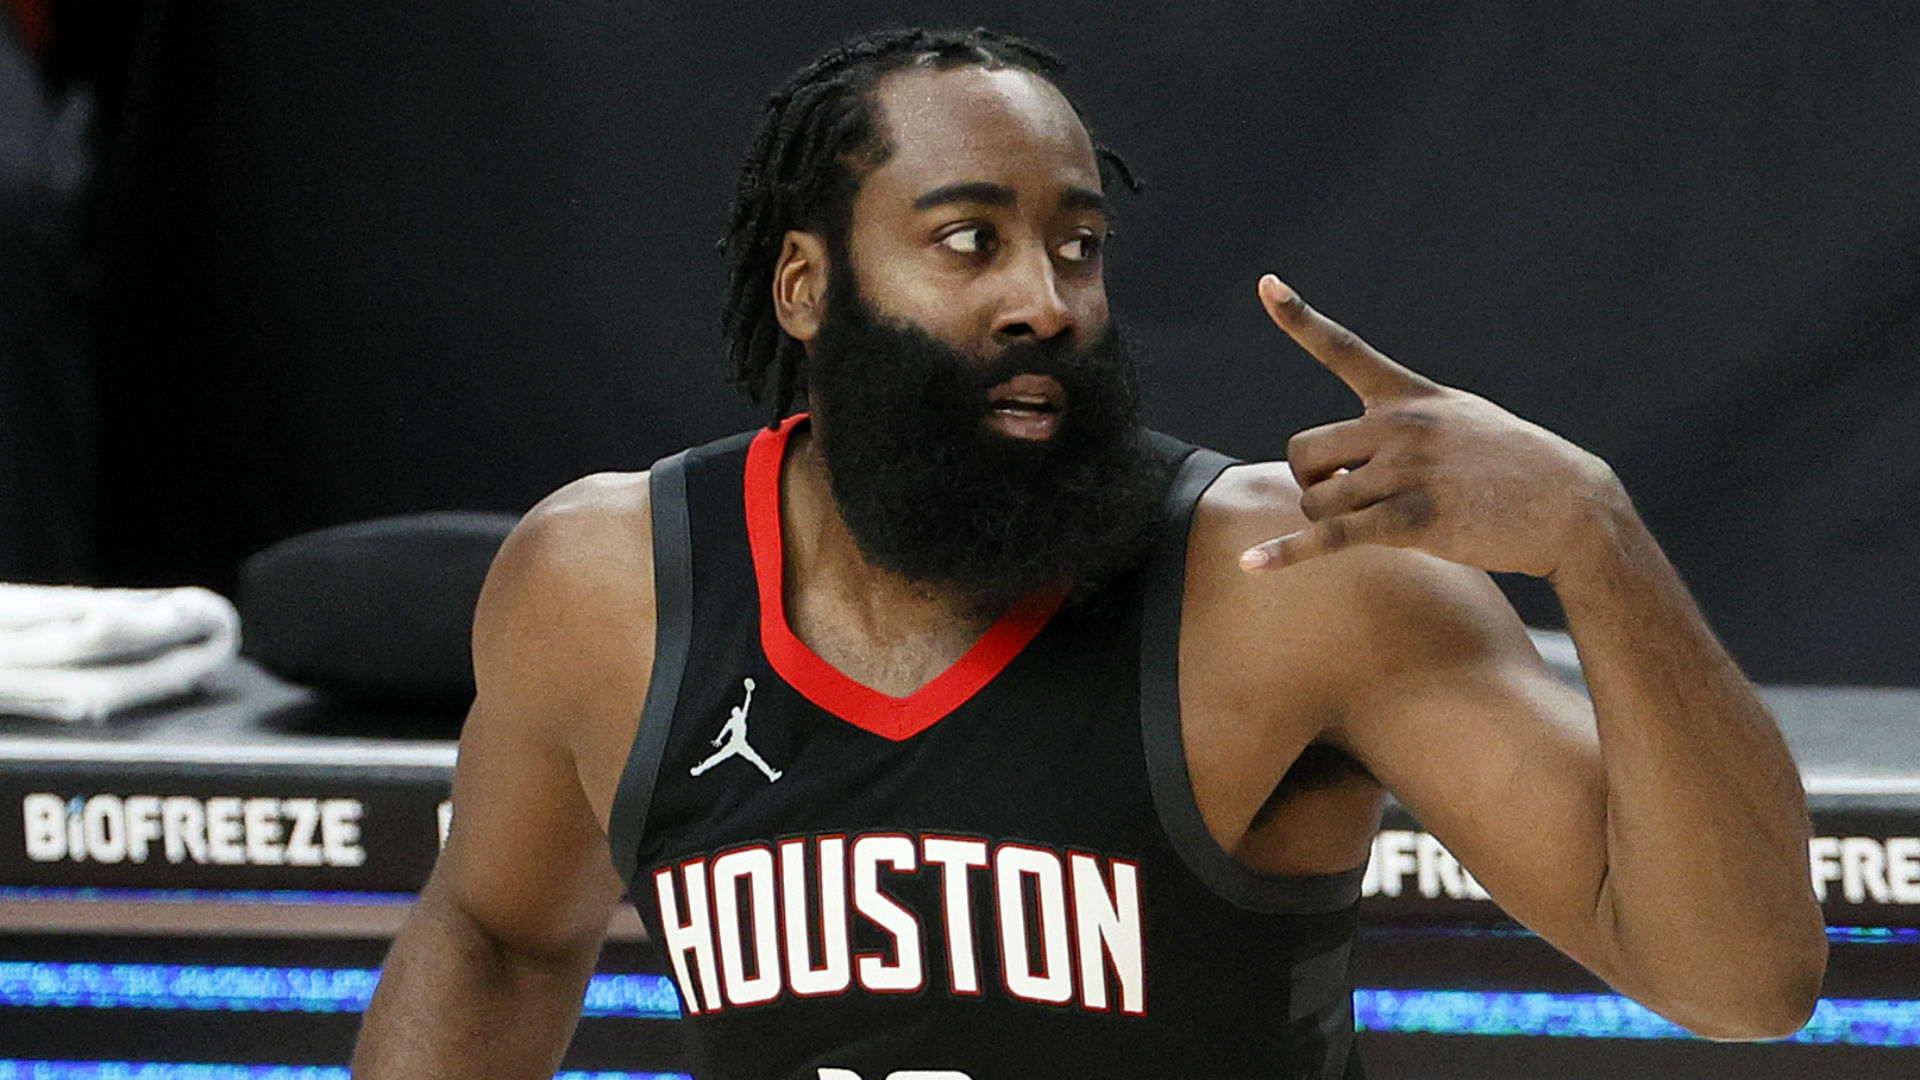 Harden's 44-point display in Rockets loss was 'all right'